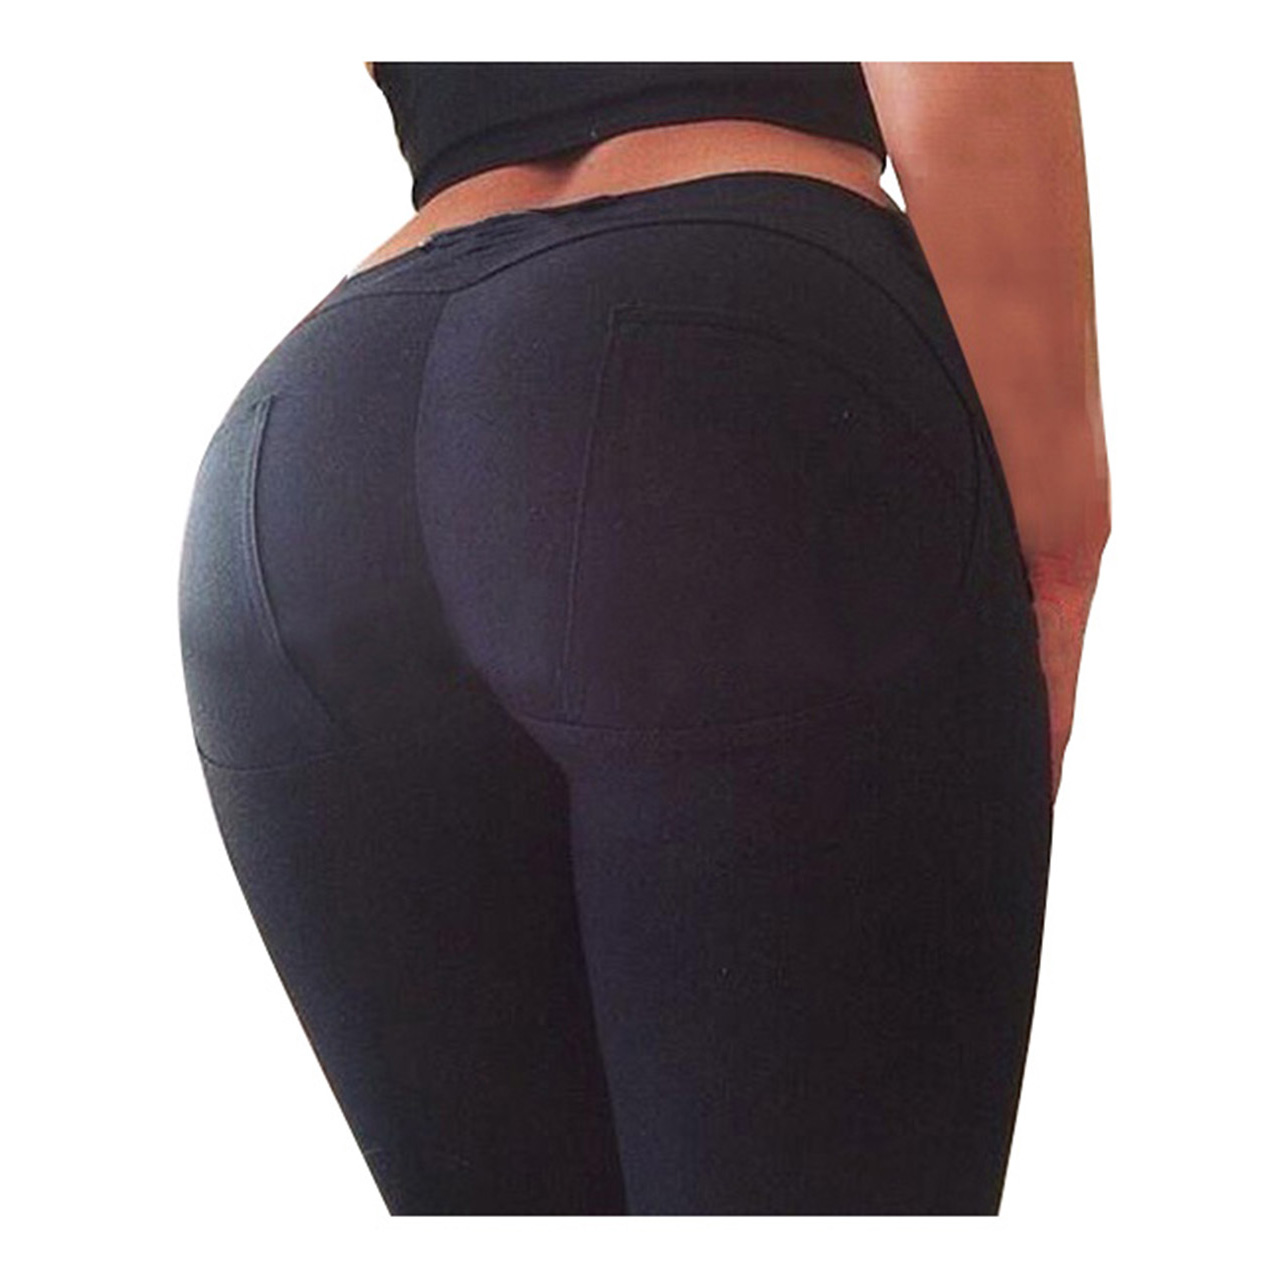 Hot Sexy Women Butt Lift Pants Colombian Brazilian Style Stretchy Skinny Pencil Tight Trousers slack skinny tight fit work pants